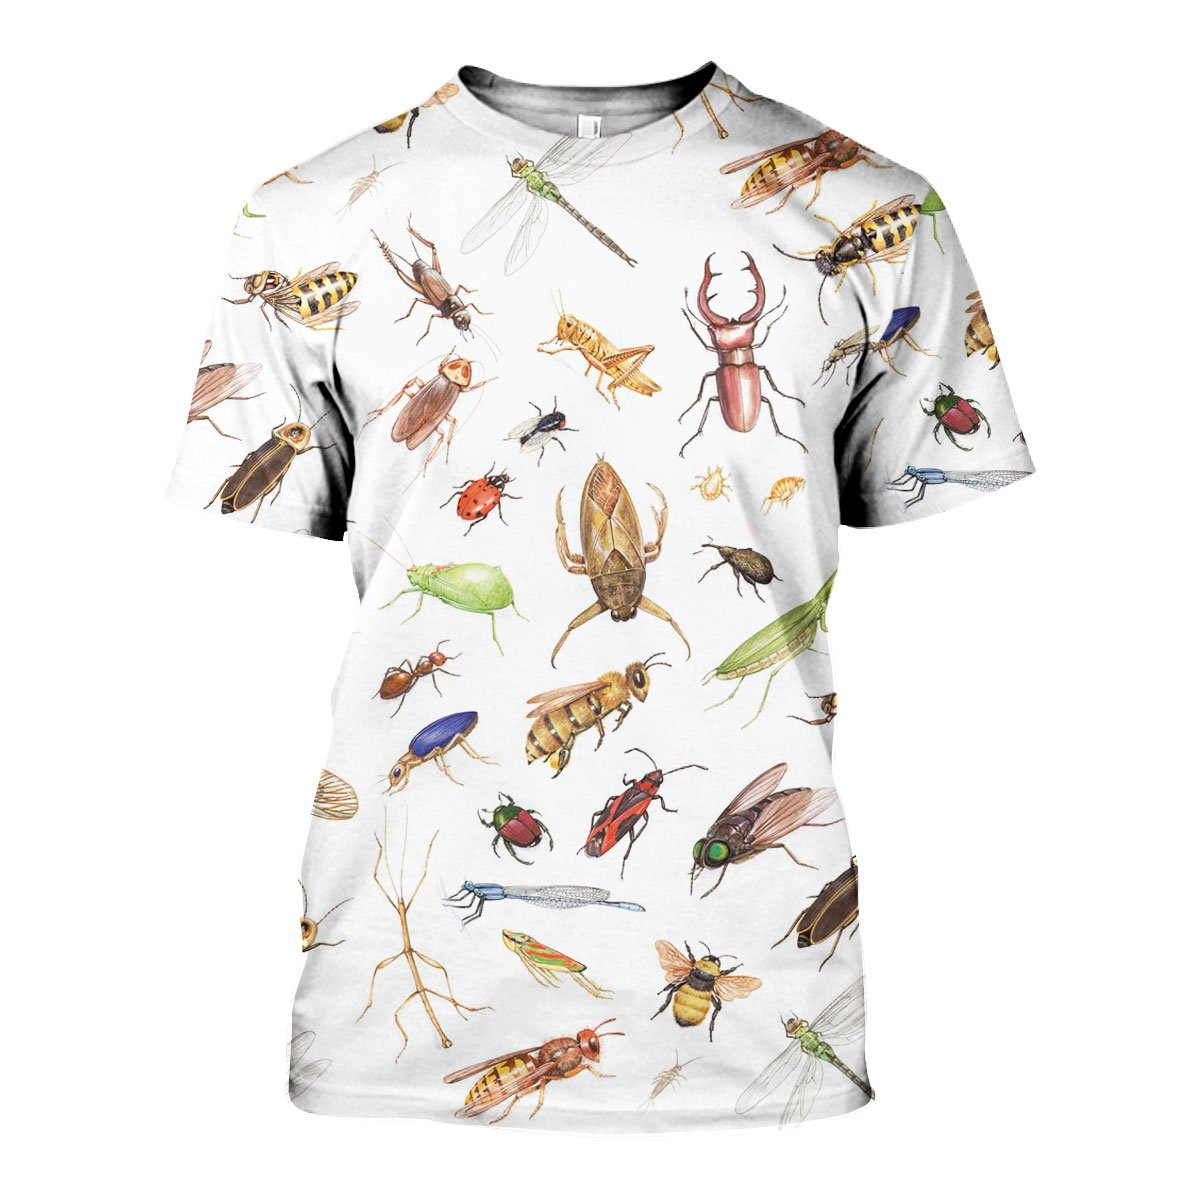 3D All Over Printed Insects Shirts and Shorts